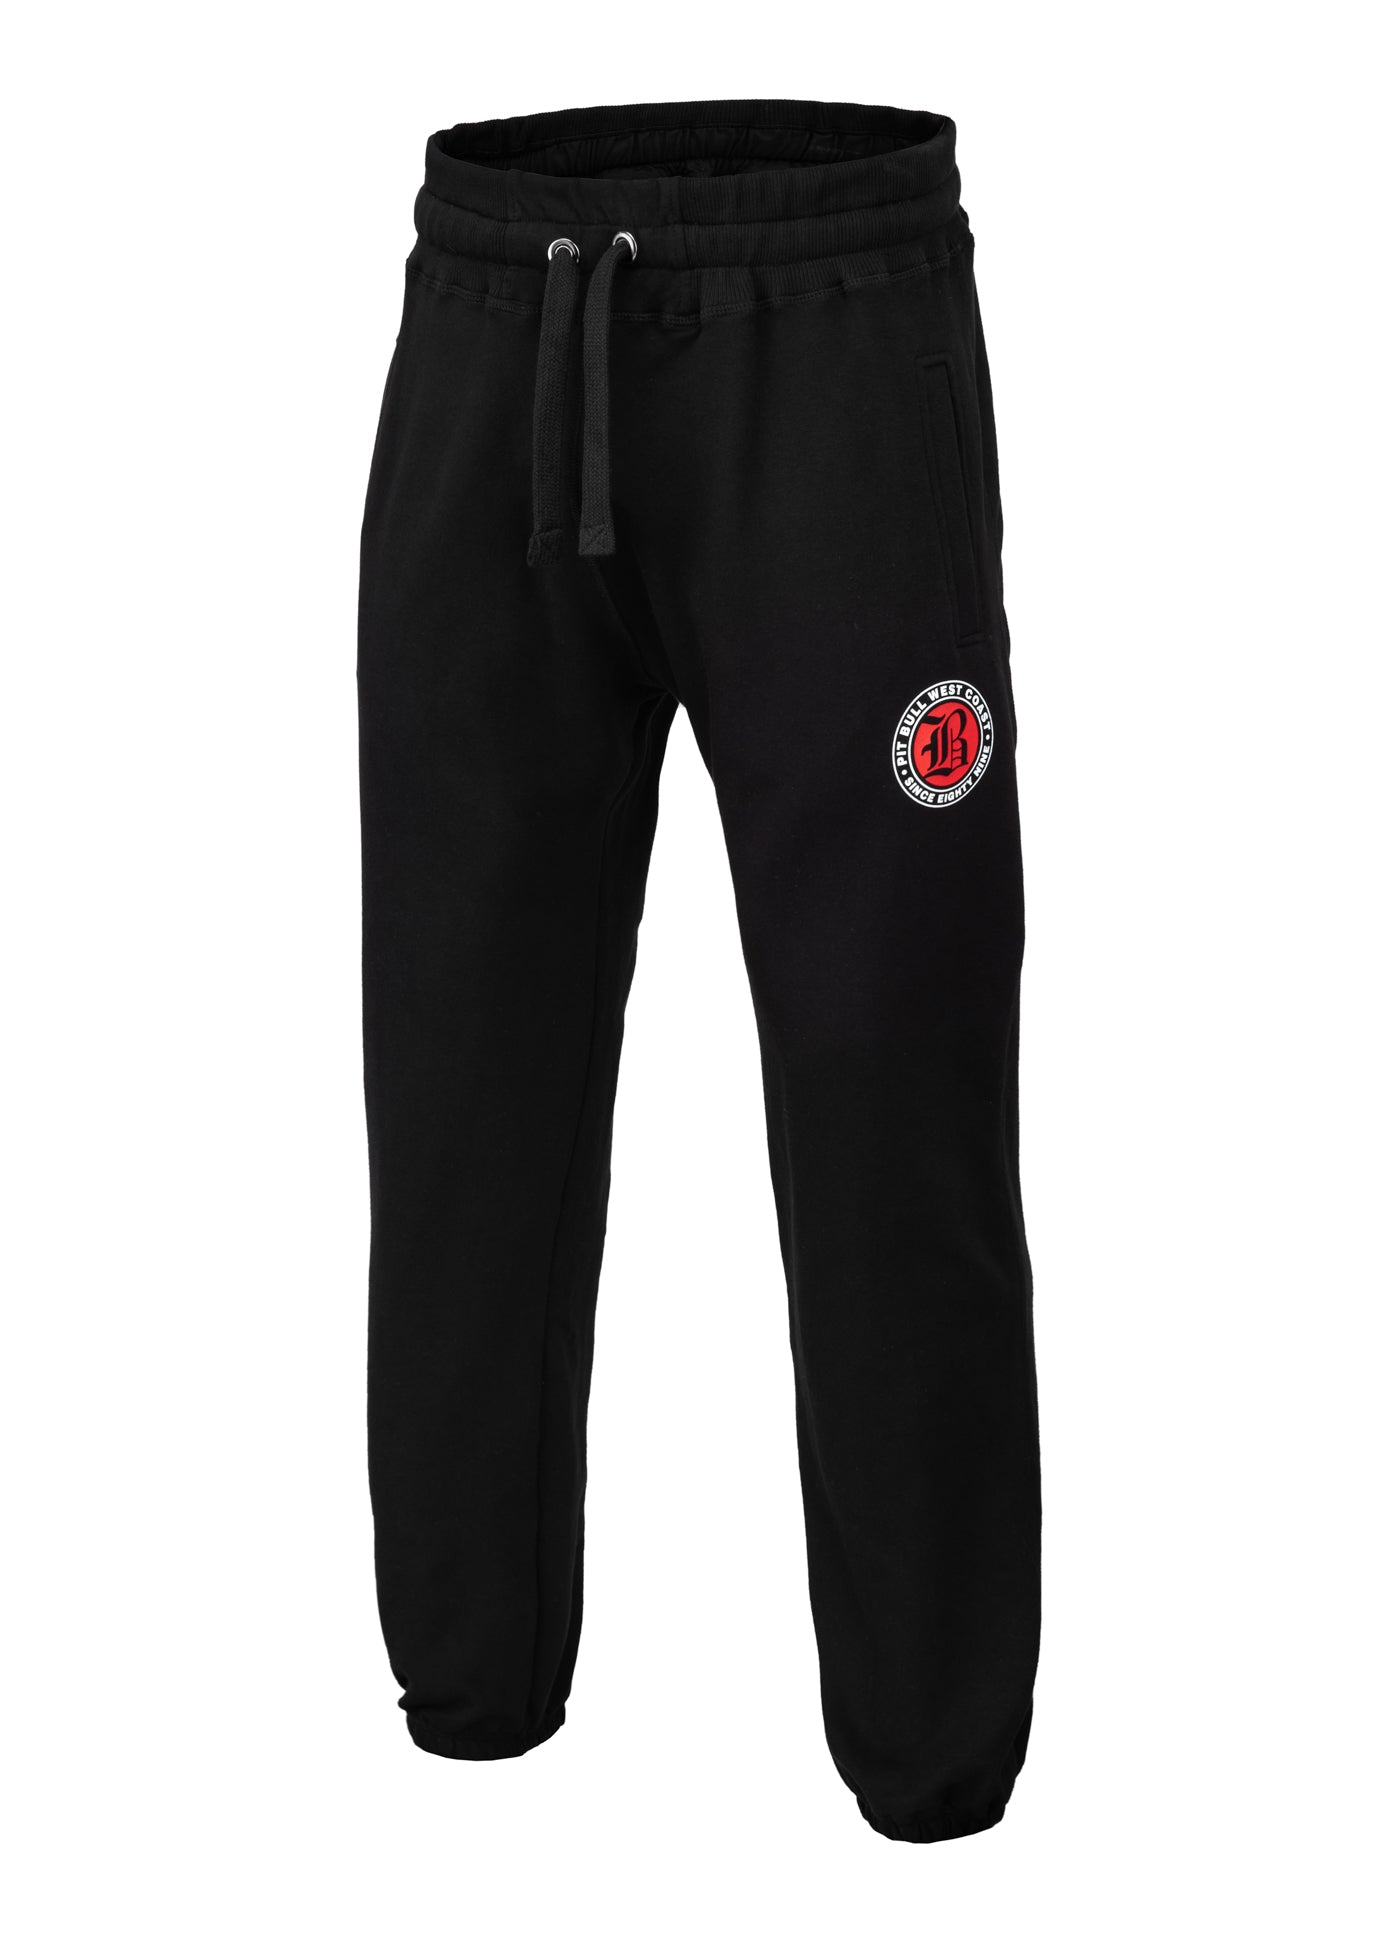 Berserkers Jogging Trousers Black - pitbullwestcoast